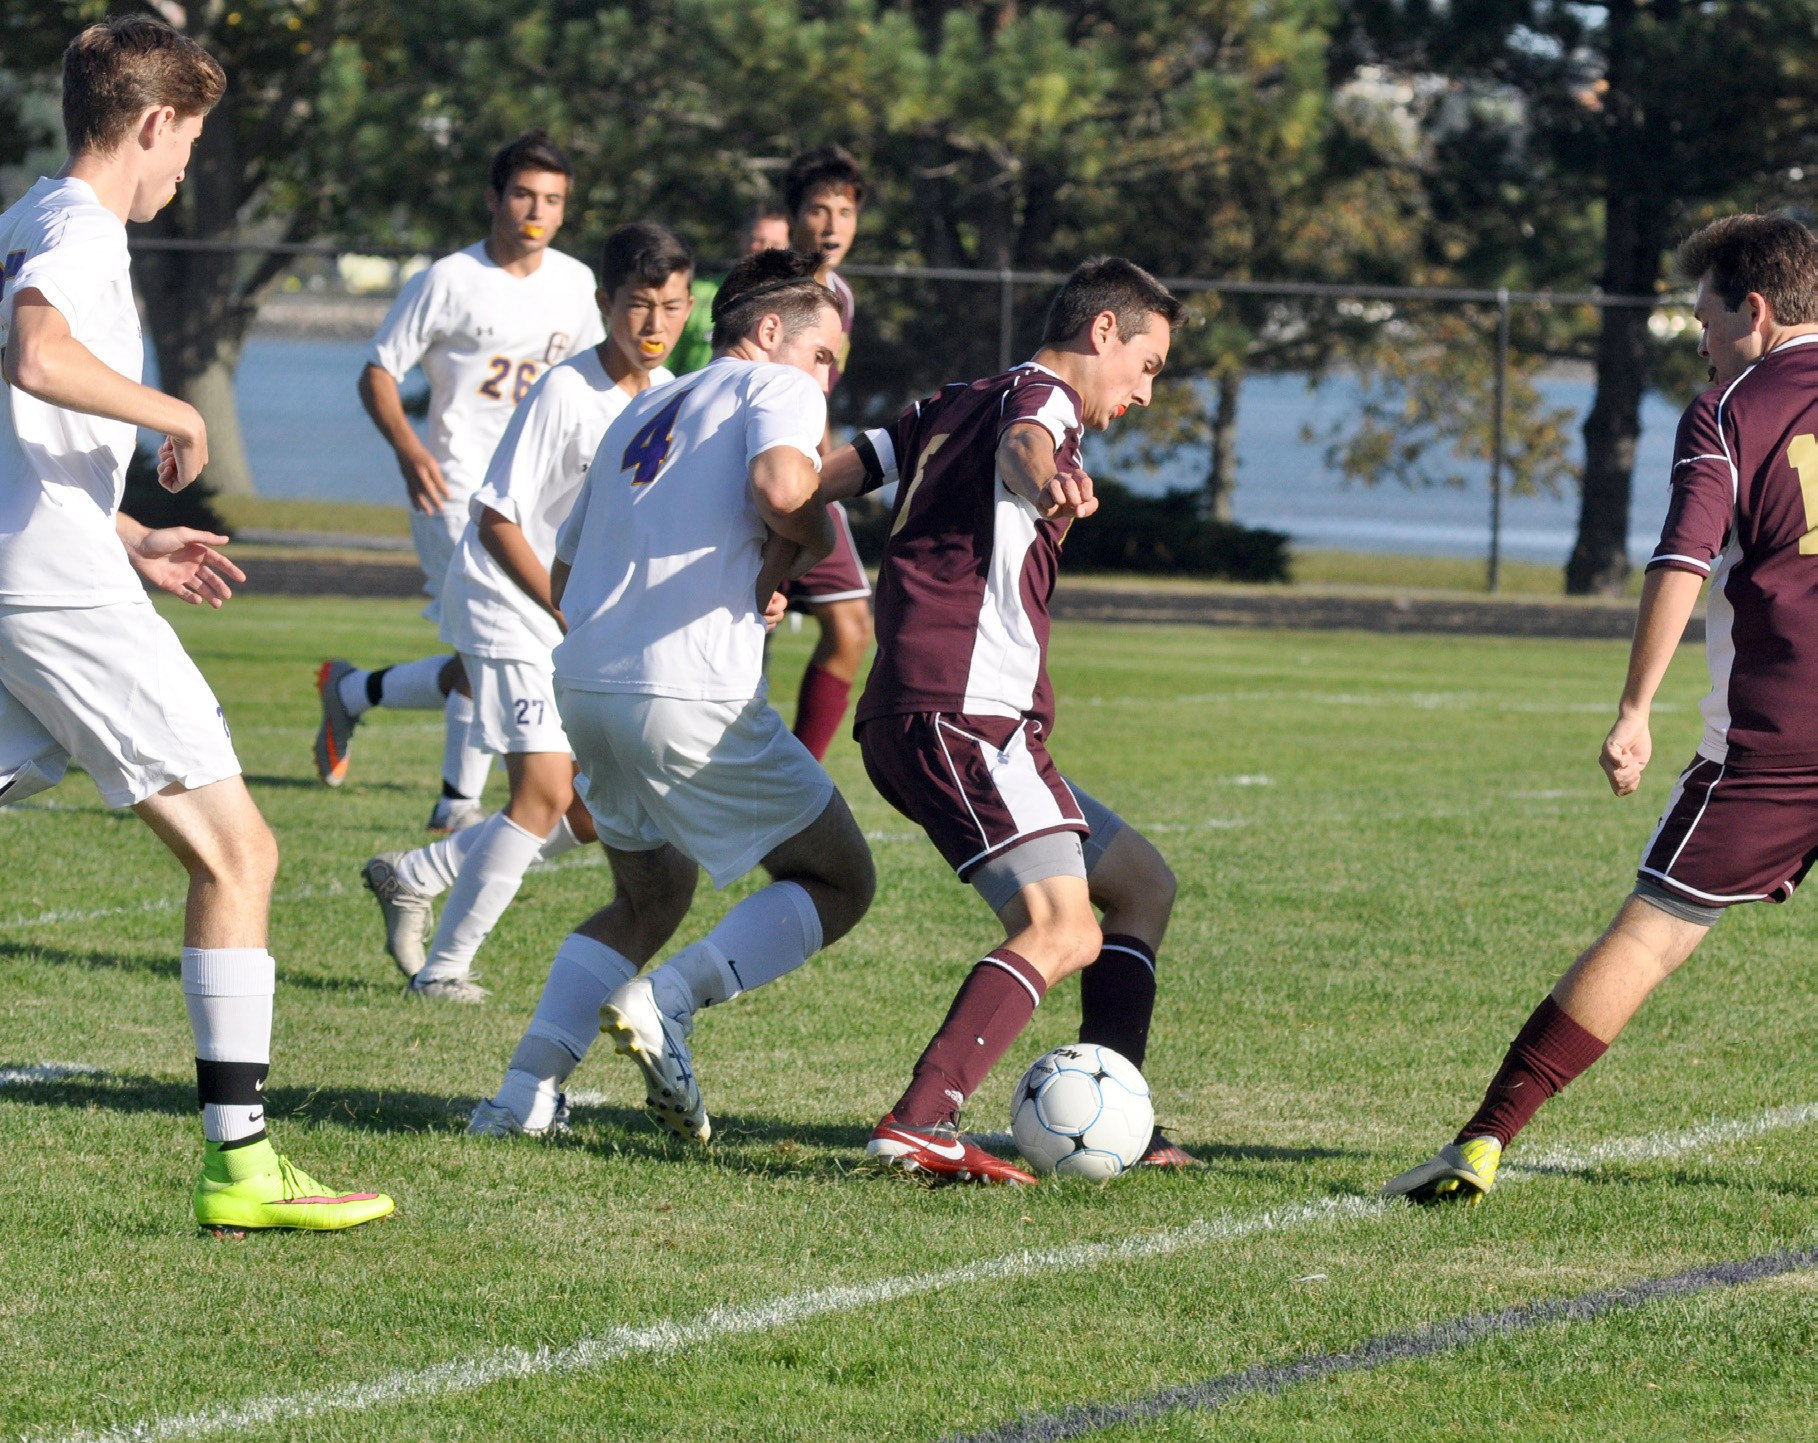 Thornton Academy's Alex Arnold, center right, shields the ball from Cheverus' Will Peterson (4) as Cheverus' Brady Levesque, far left, and Thornton's Anthony Palamountain, far right, look on during the Trojans' 2-1 victory at Boulos Stadium in Portland Thursday.